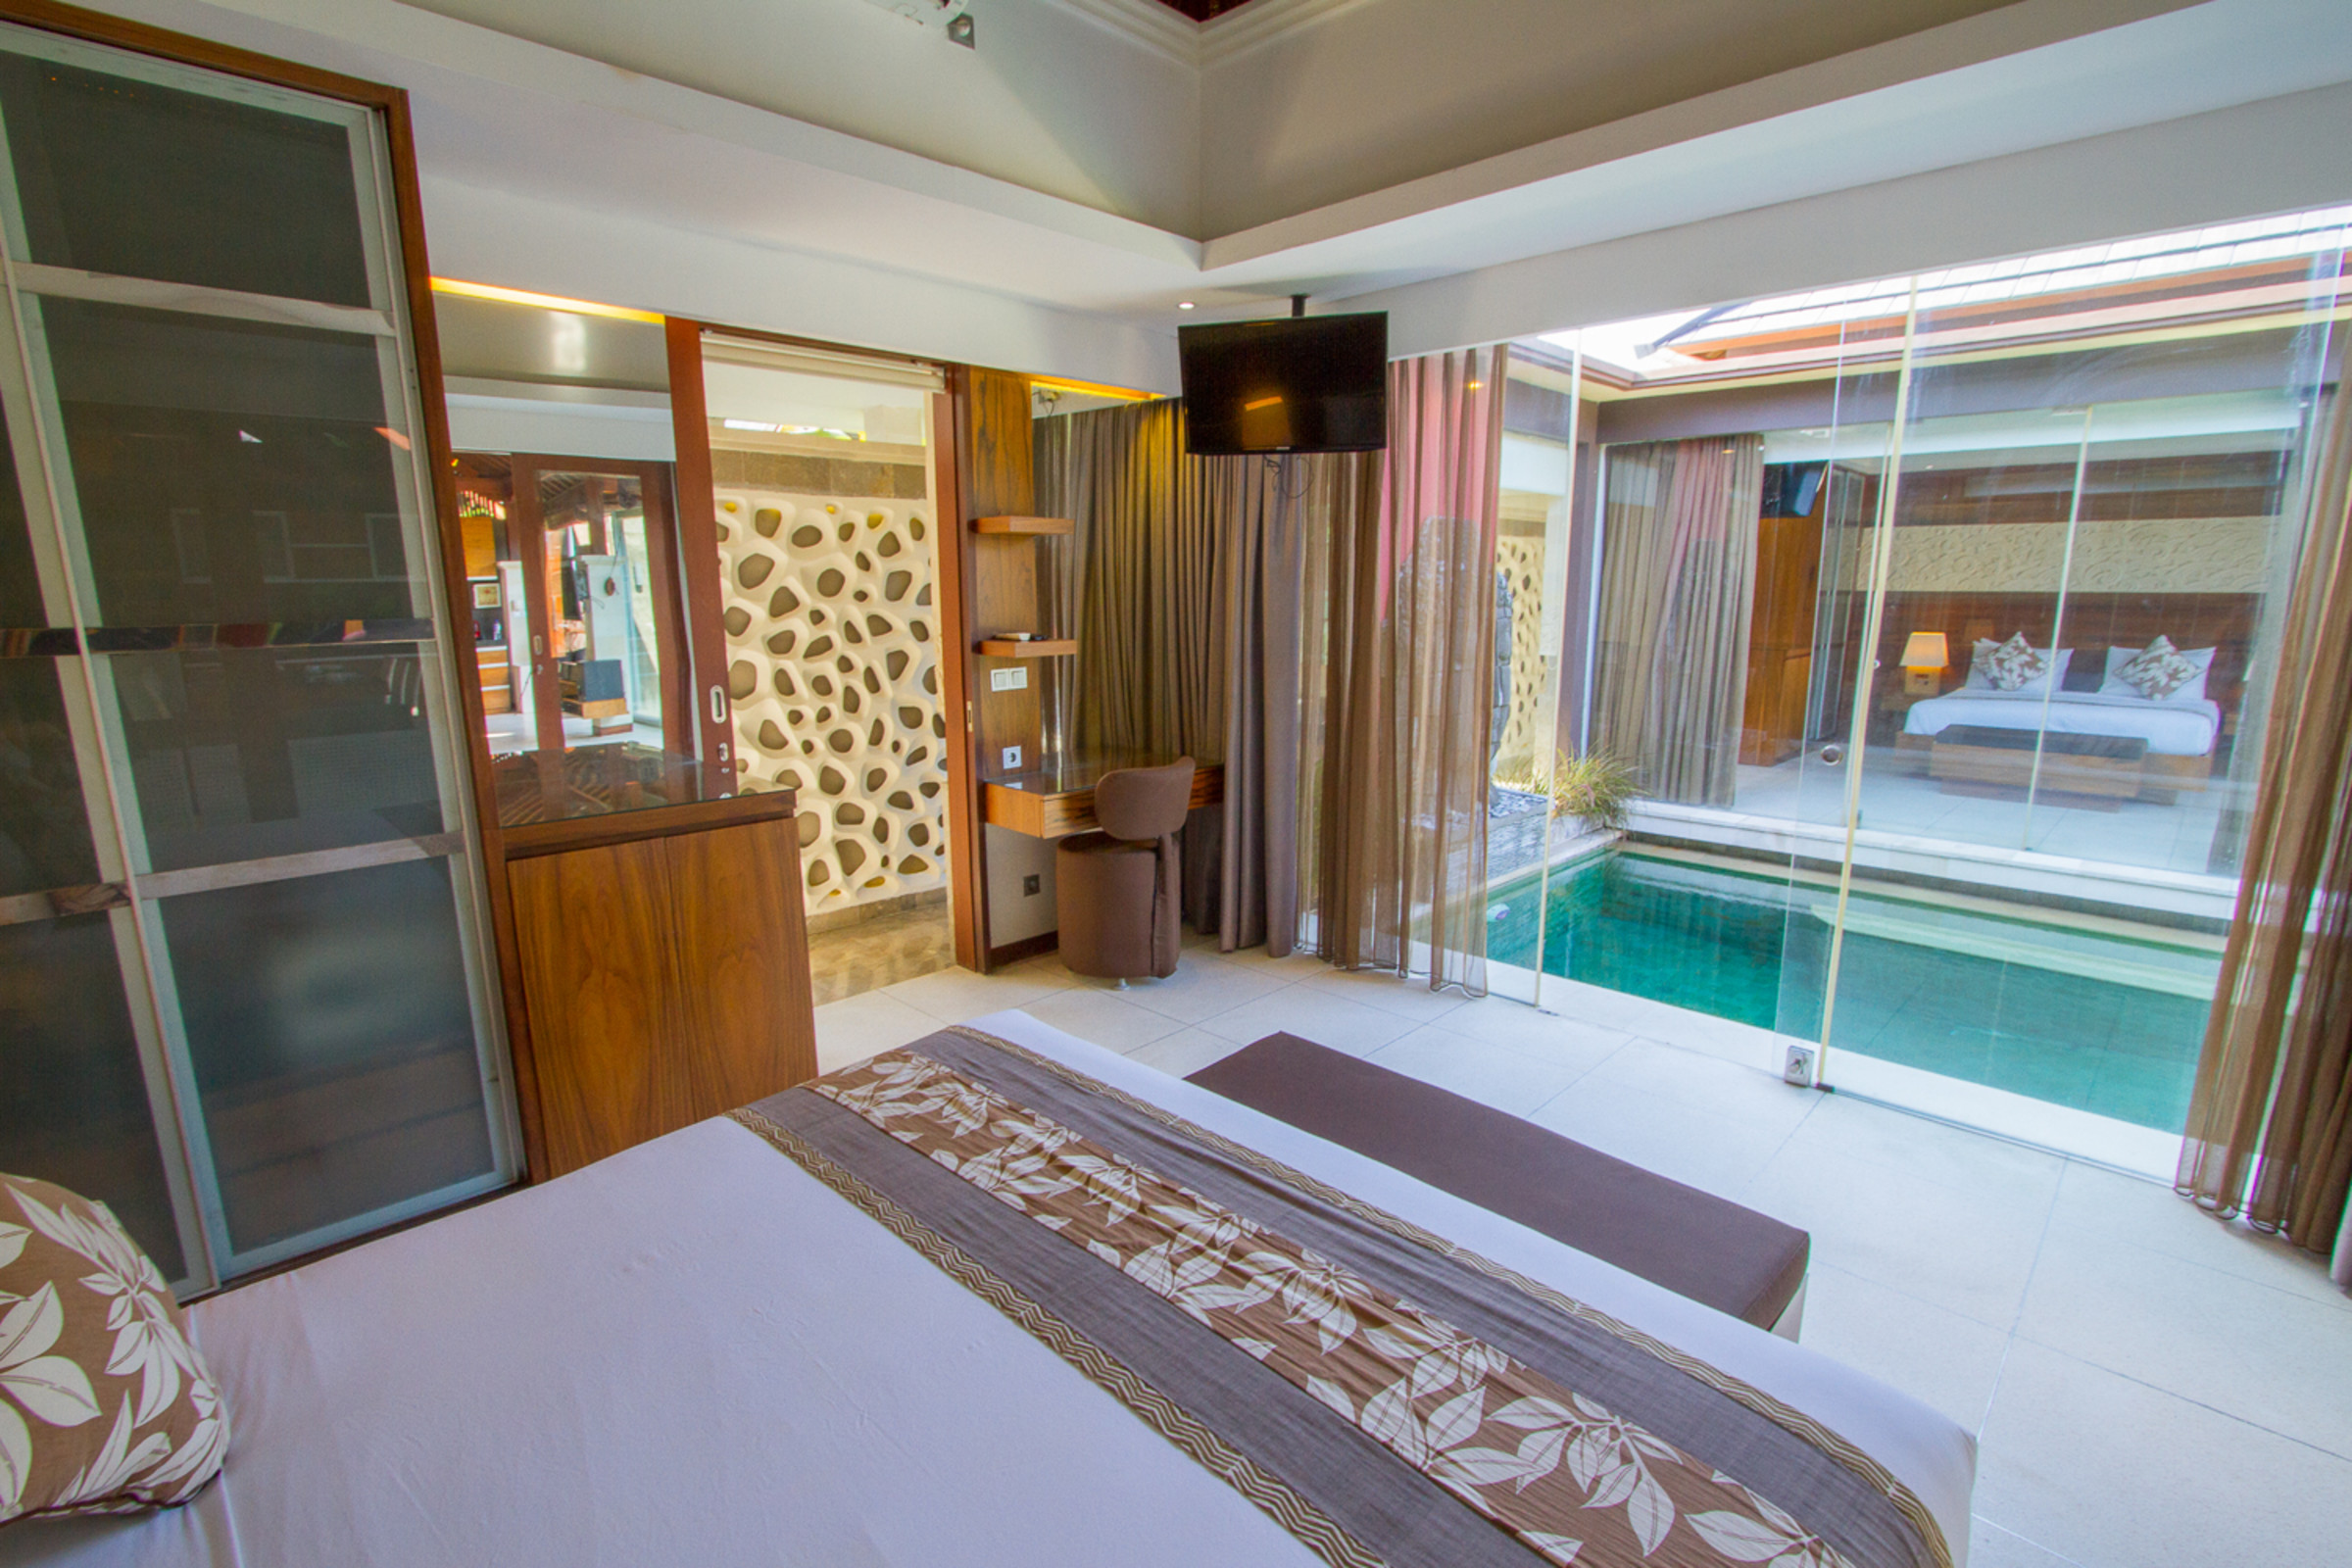 Meuble Salle De Bain Bath And Kitchen ~ Villa Ava Vii Seminyak Bali Rental Villas Villas In Bali